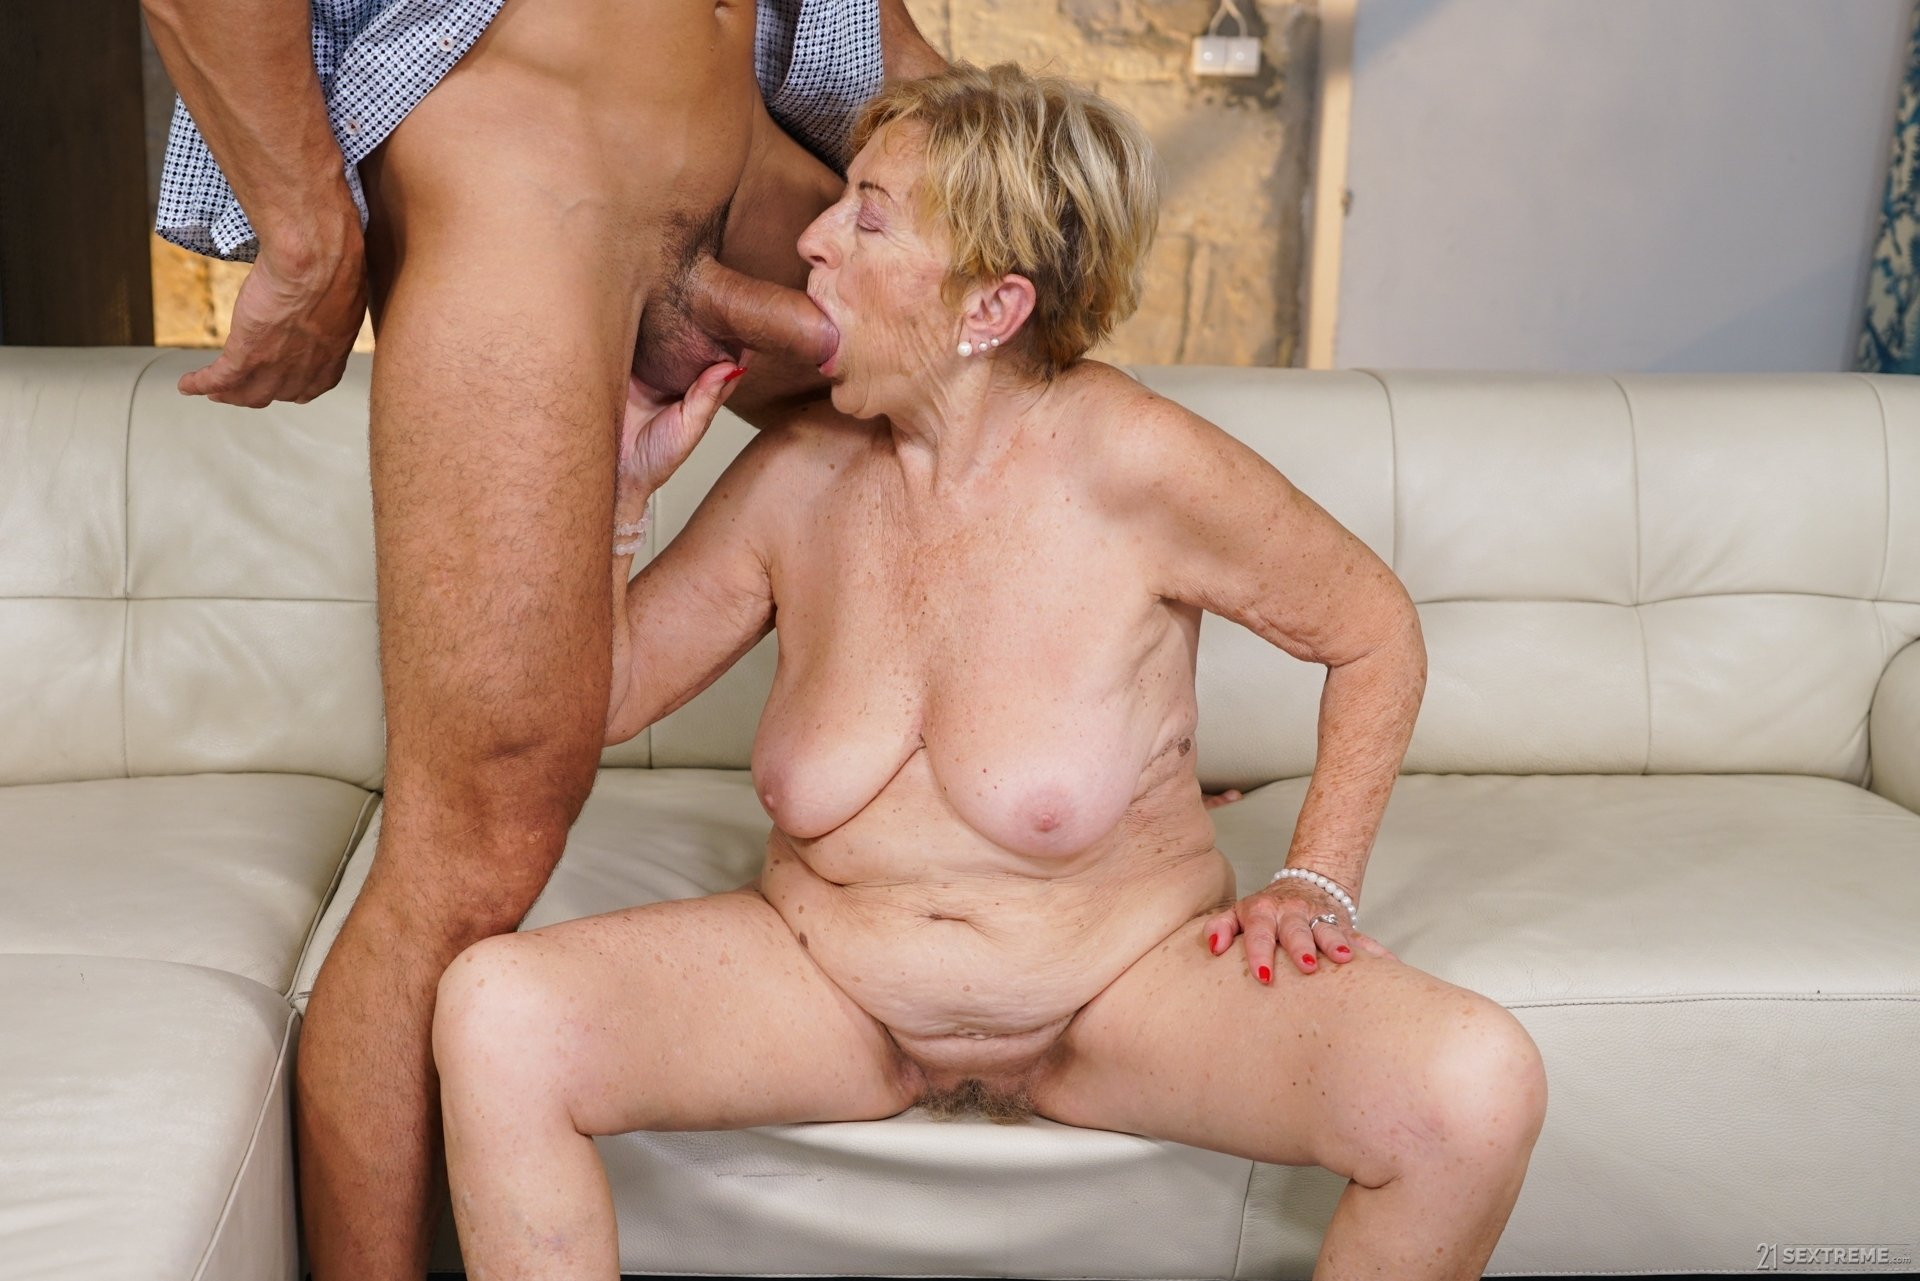 Kaziramar    reccomend high definition granny porn